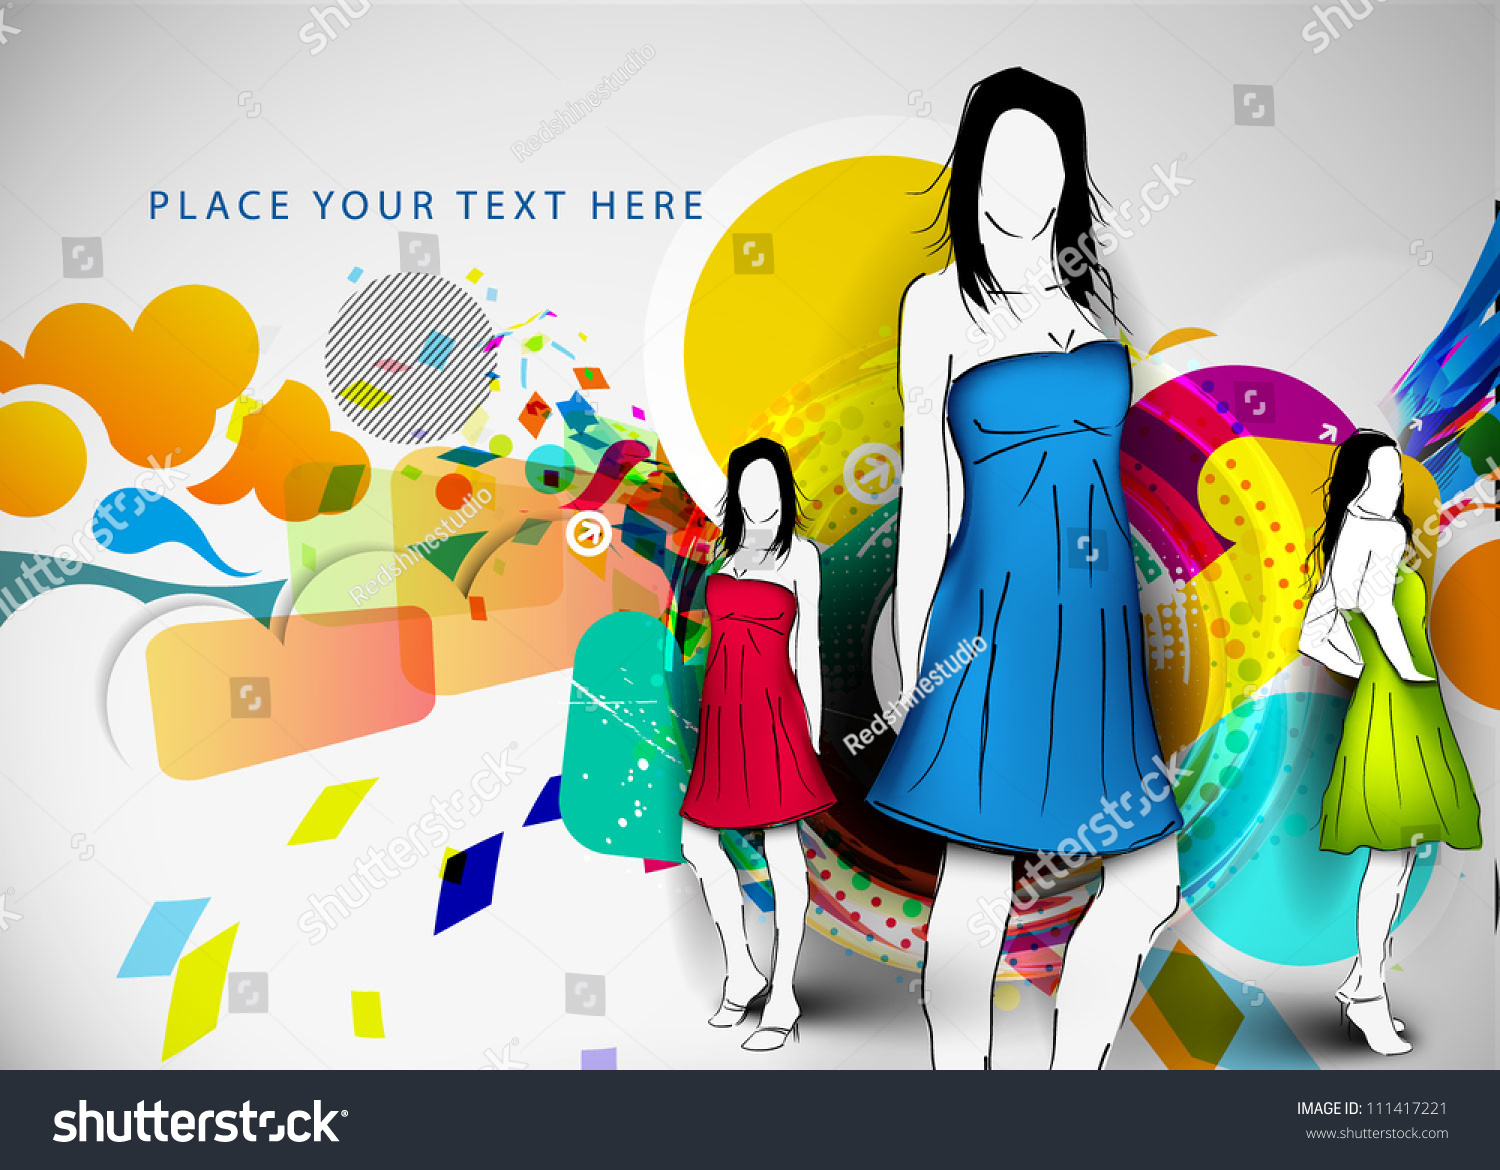 Vector Fashion Girls Sketchstyle Abstract Background Stock Vector Royalty Free 111417221